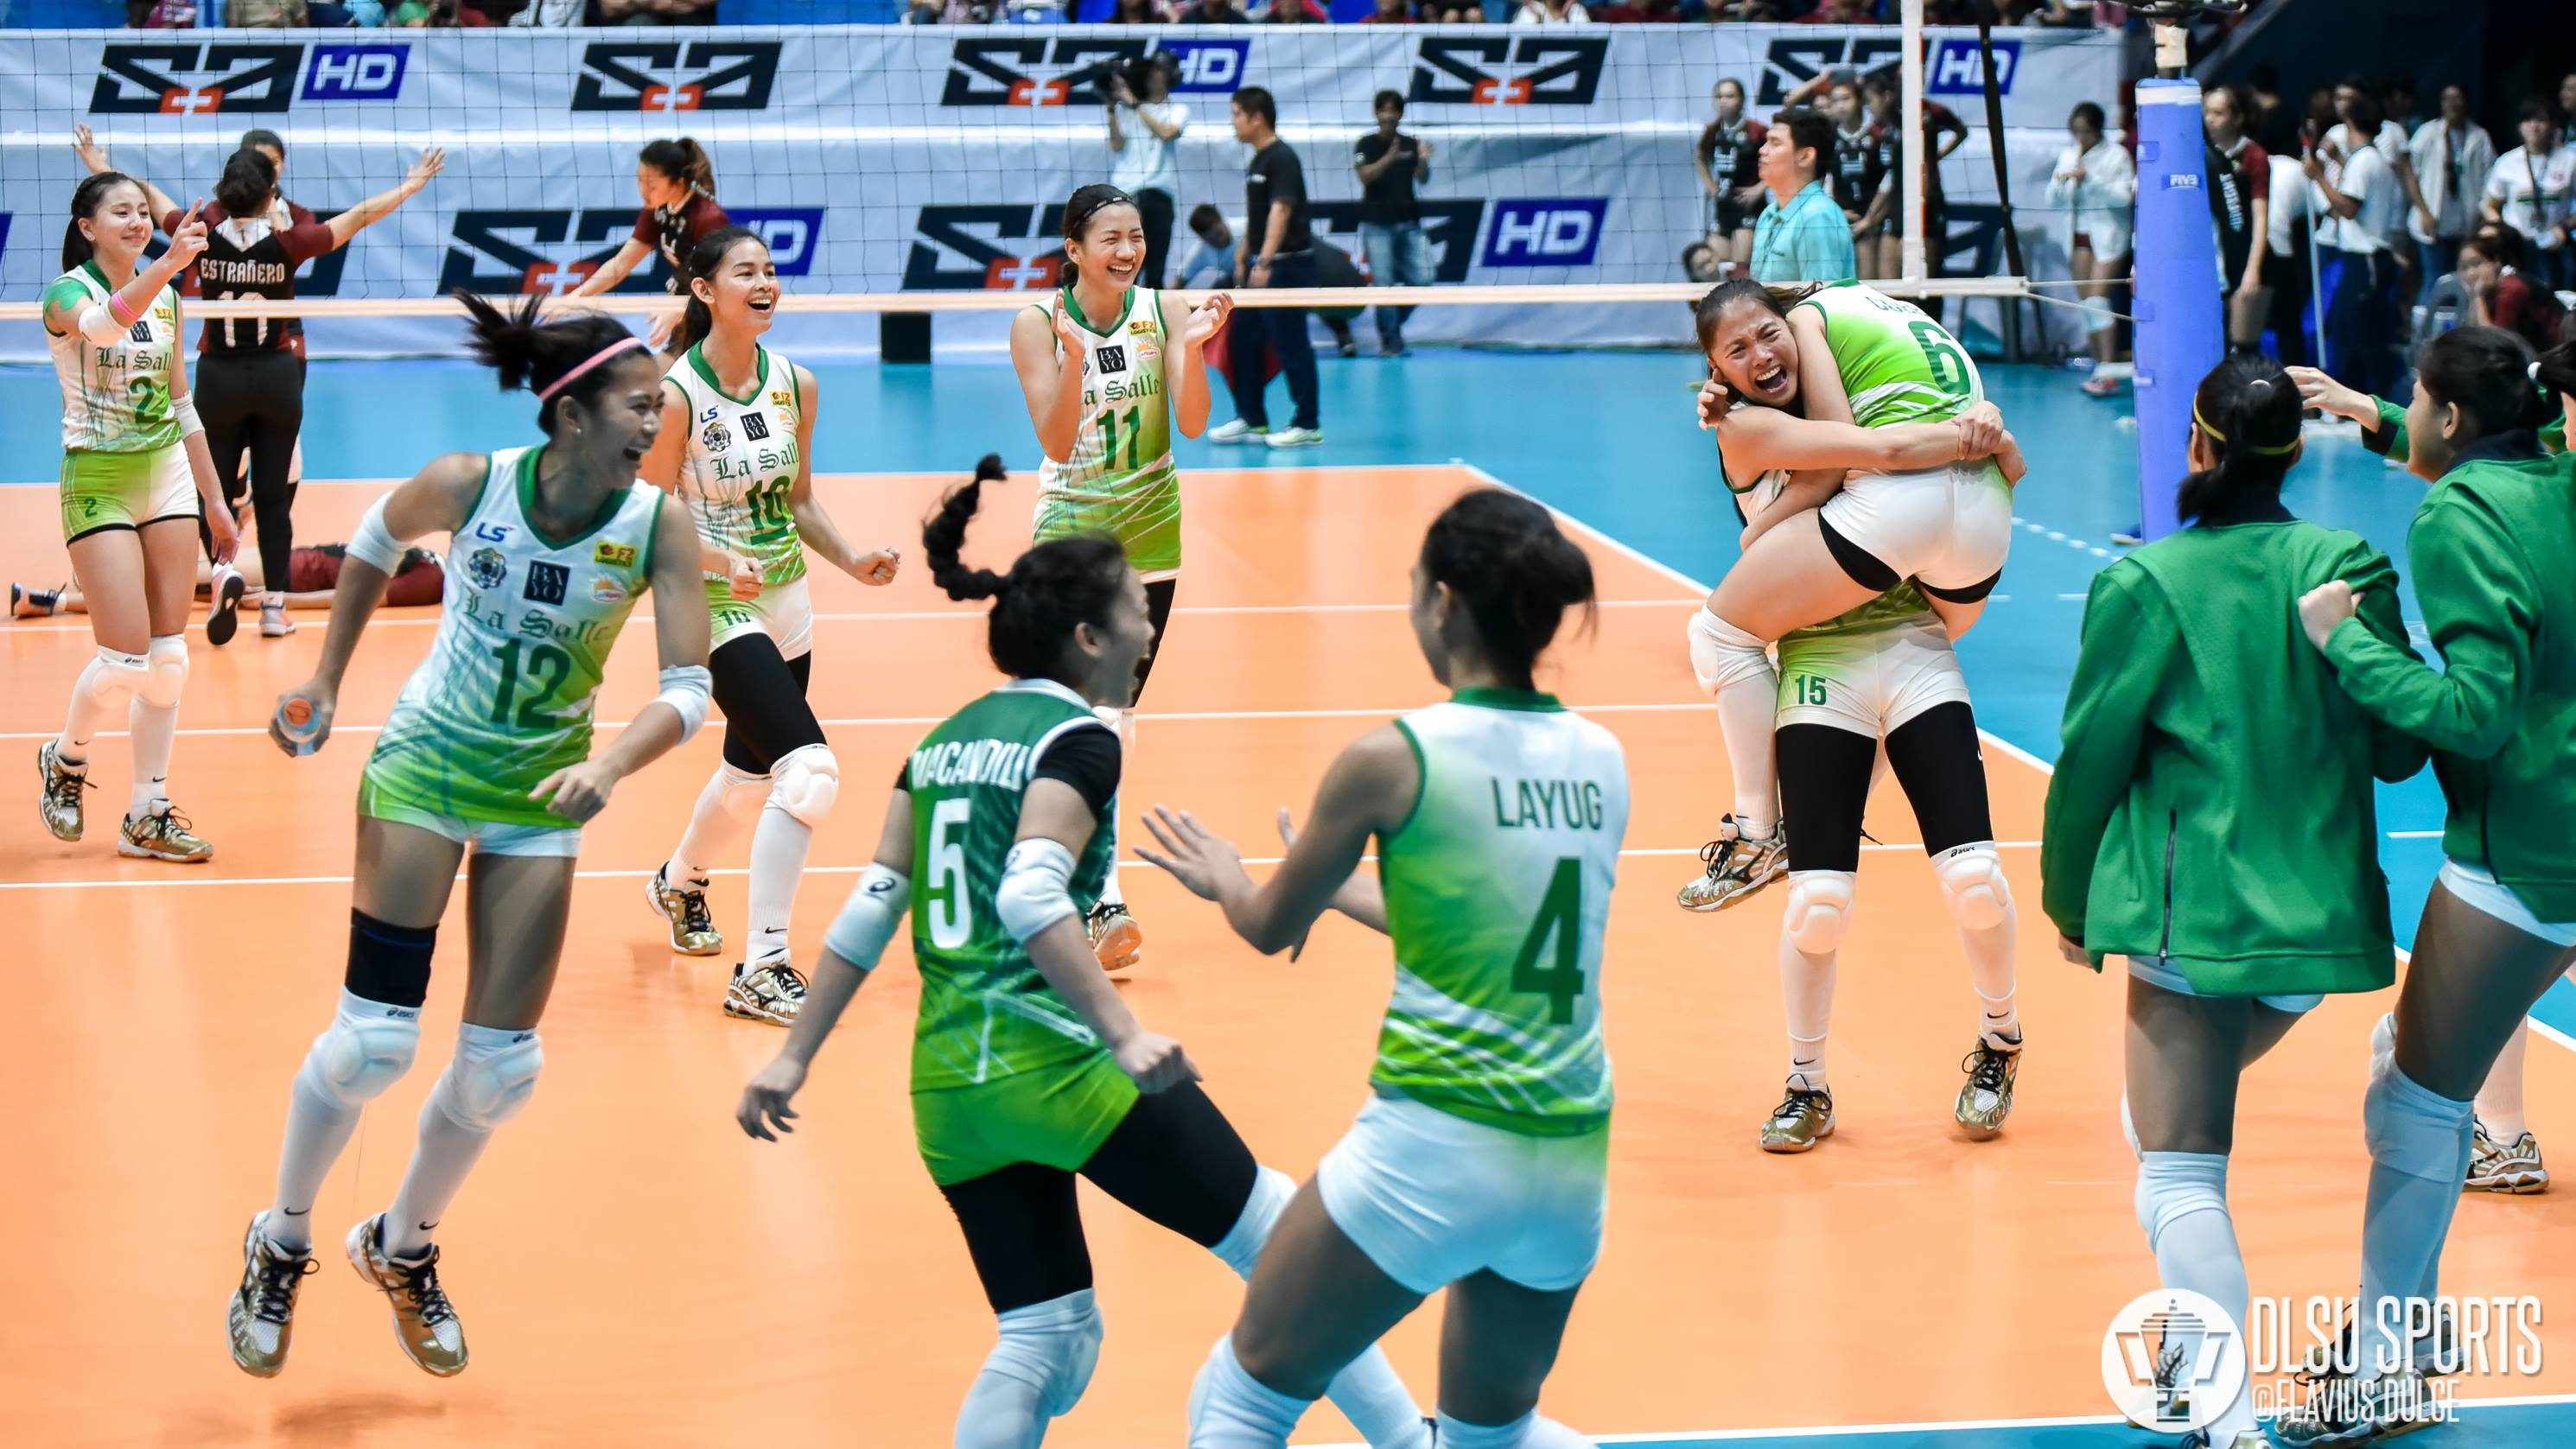 The DLSU Lady Spikers celebrate their win over UP after setter Michelle Cobb aced three straight services to complete their Set 3 comeback.